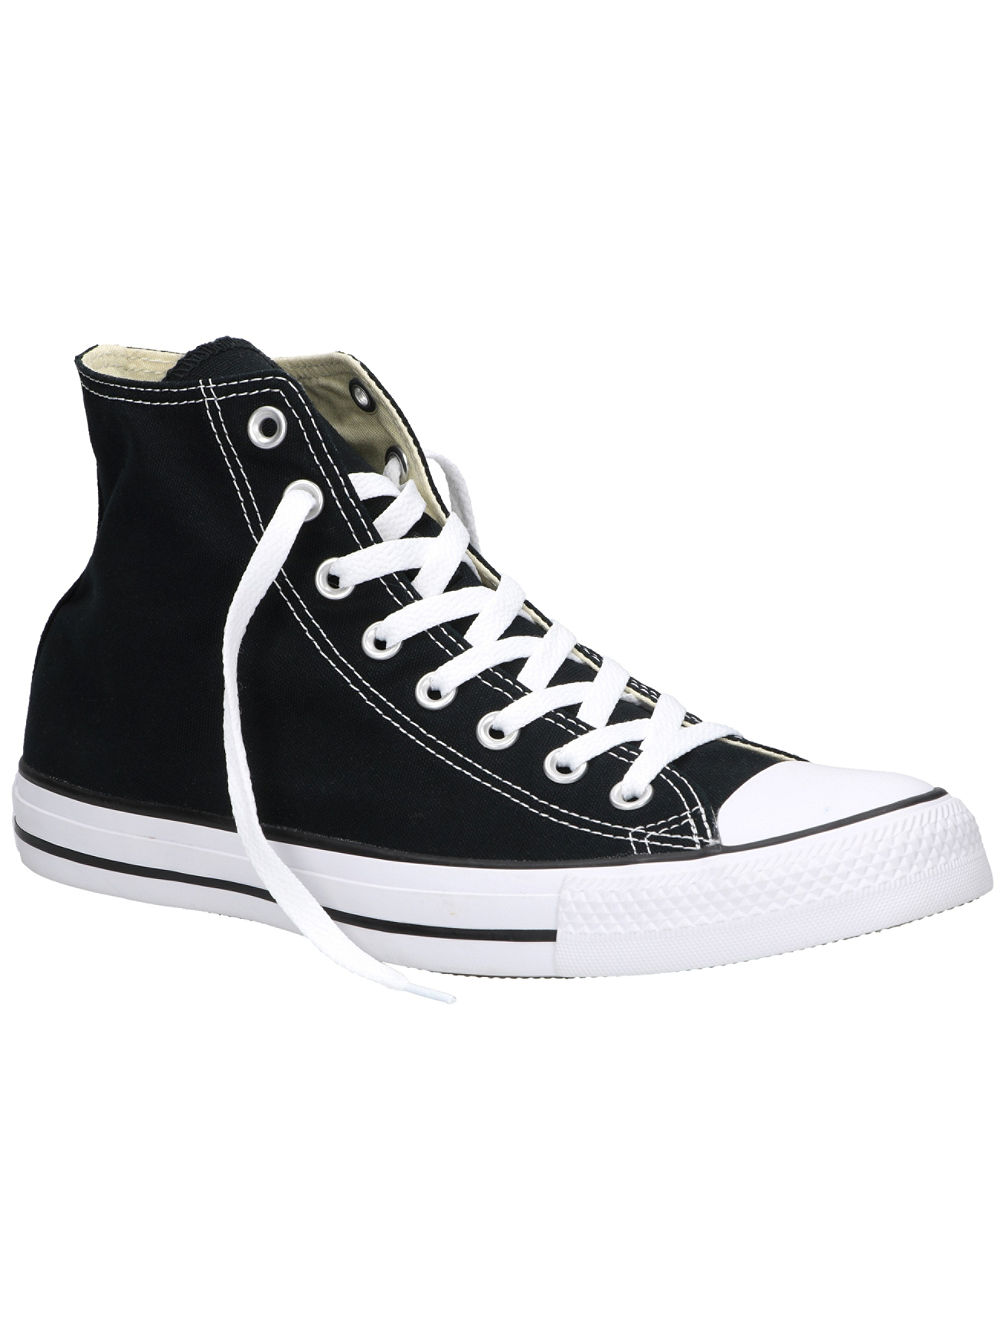 Buy Converse Chuck Taylor All Star Core Canvas Hi Sneaker online at ... 47736a4ed99